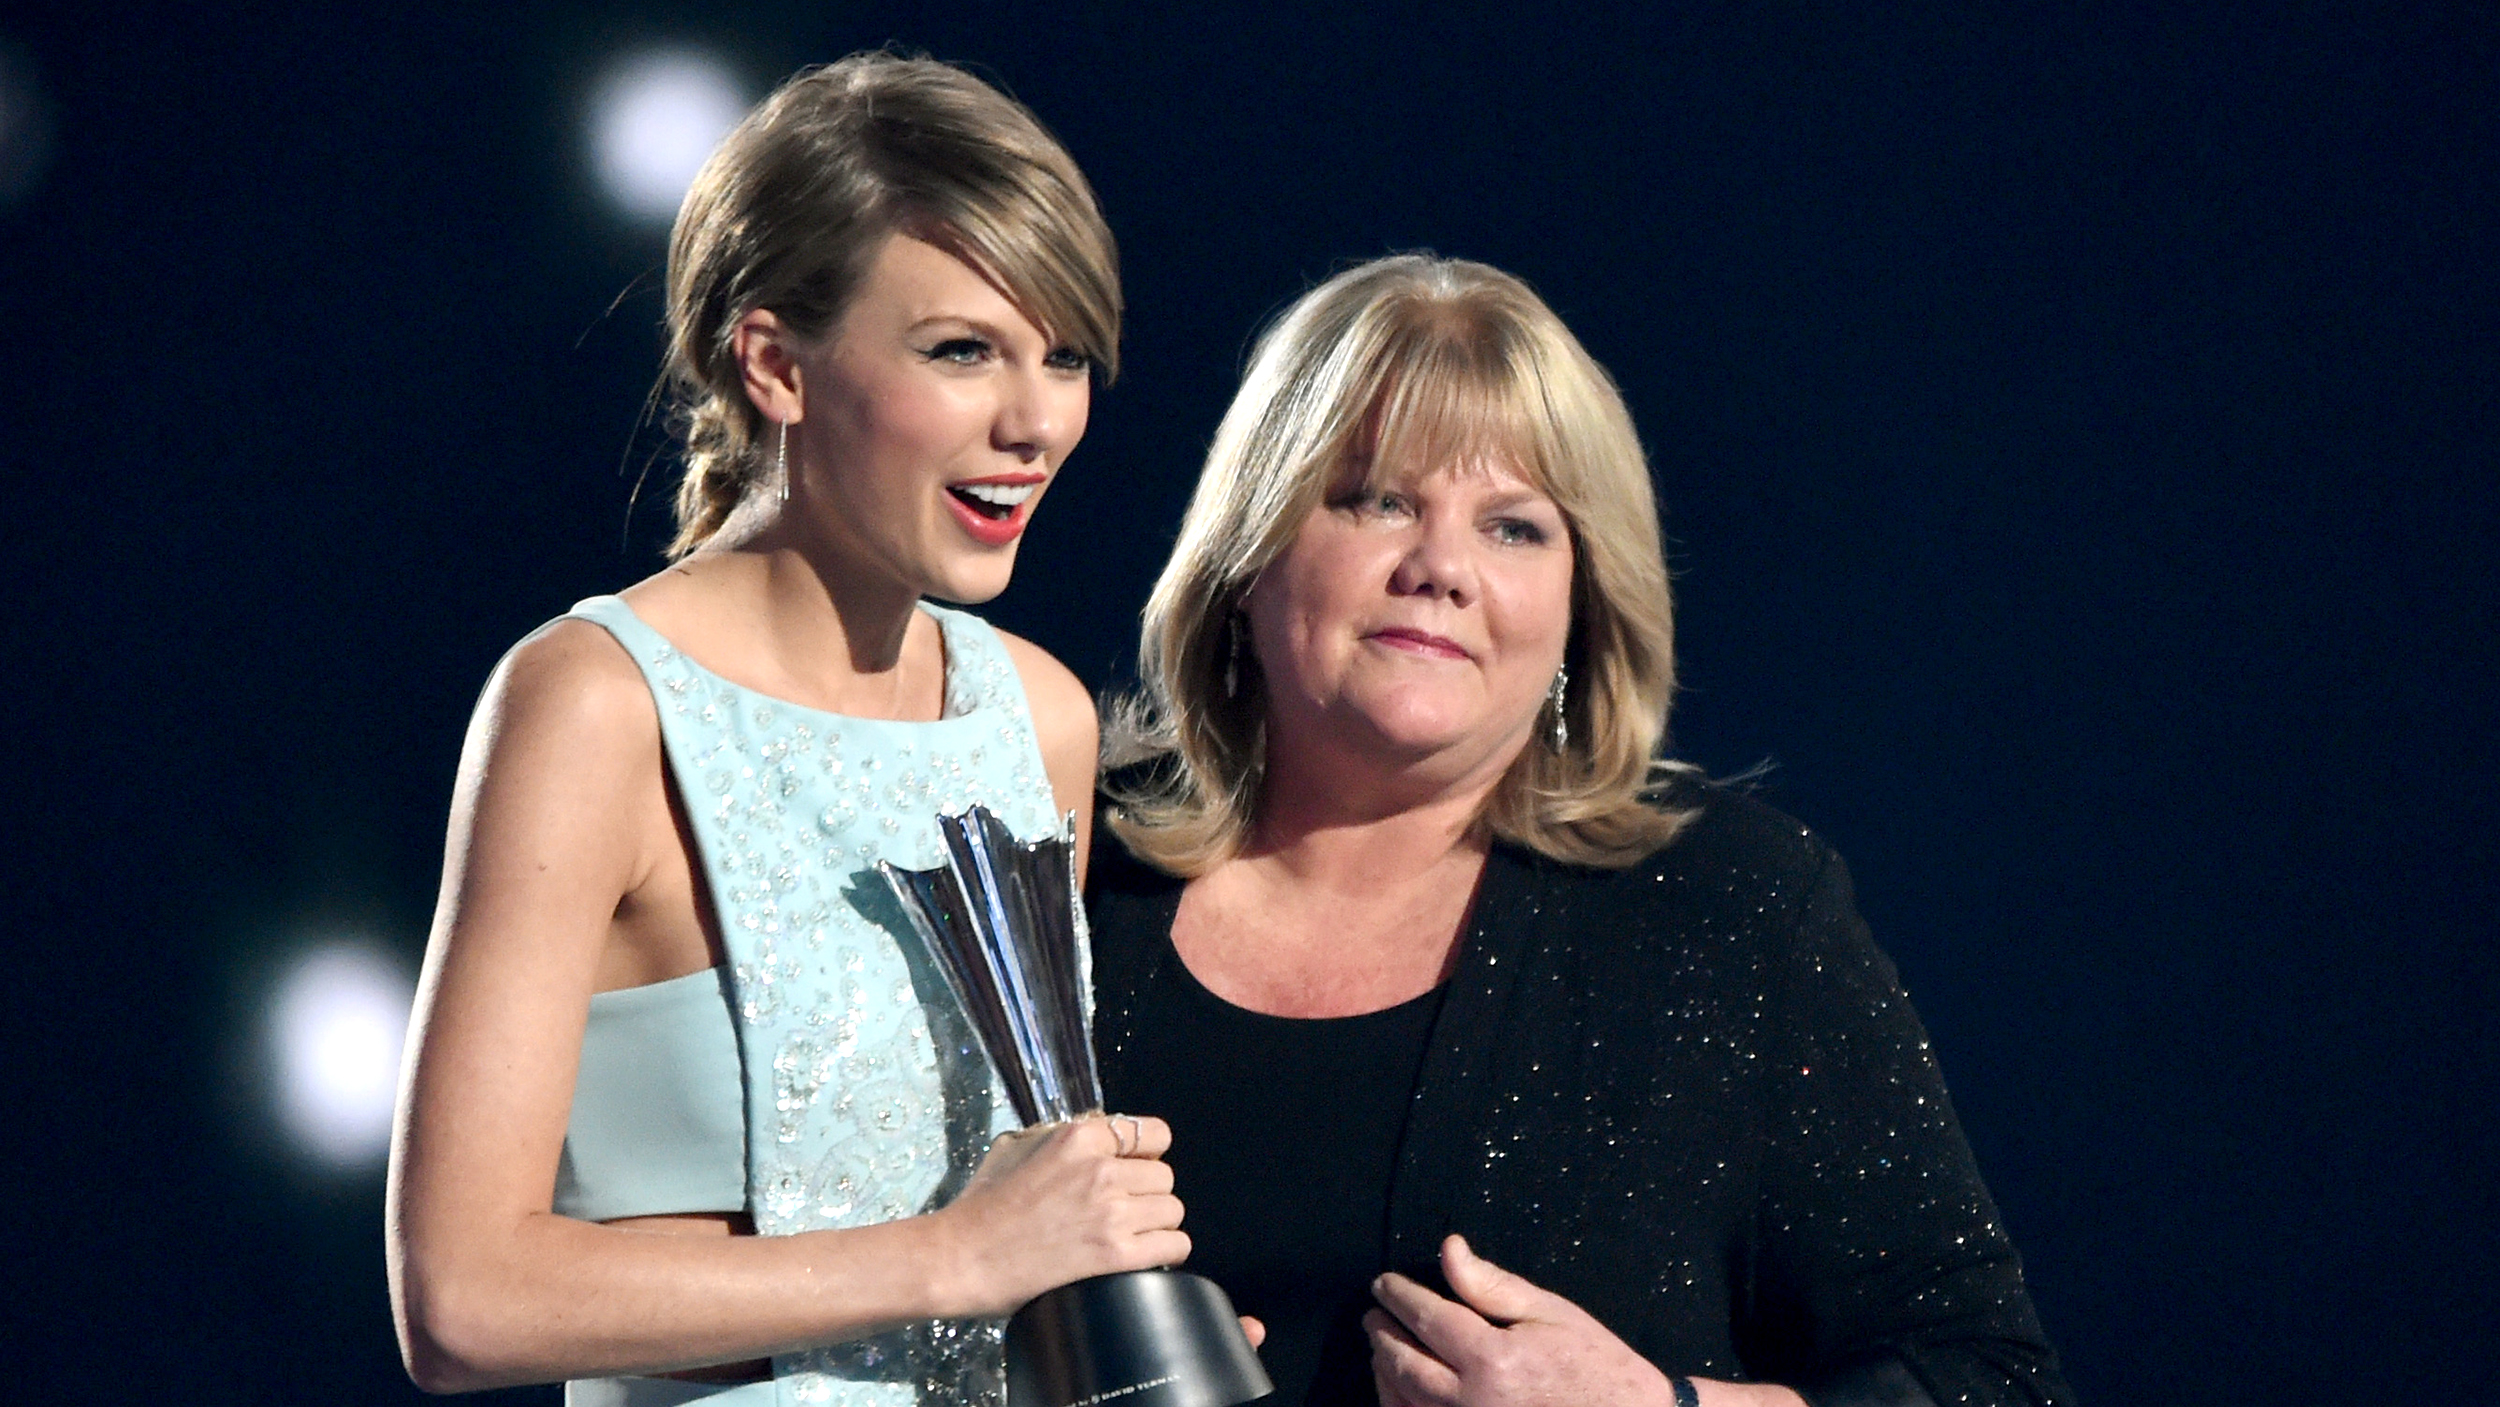 Taylor Swift S Mom Delivers Heartfelt Speech At Acm Awards